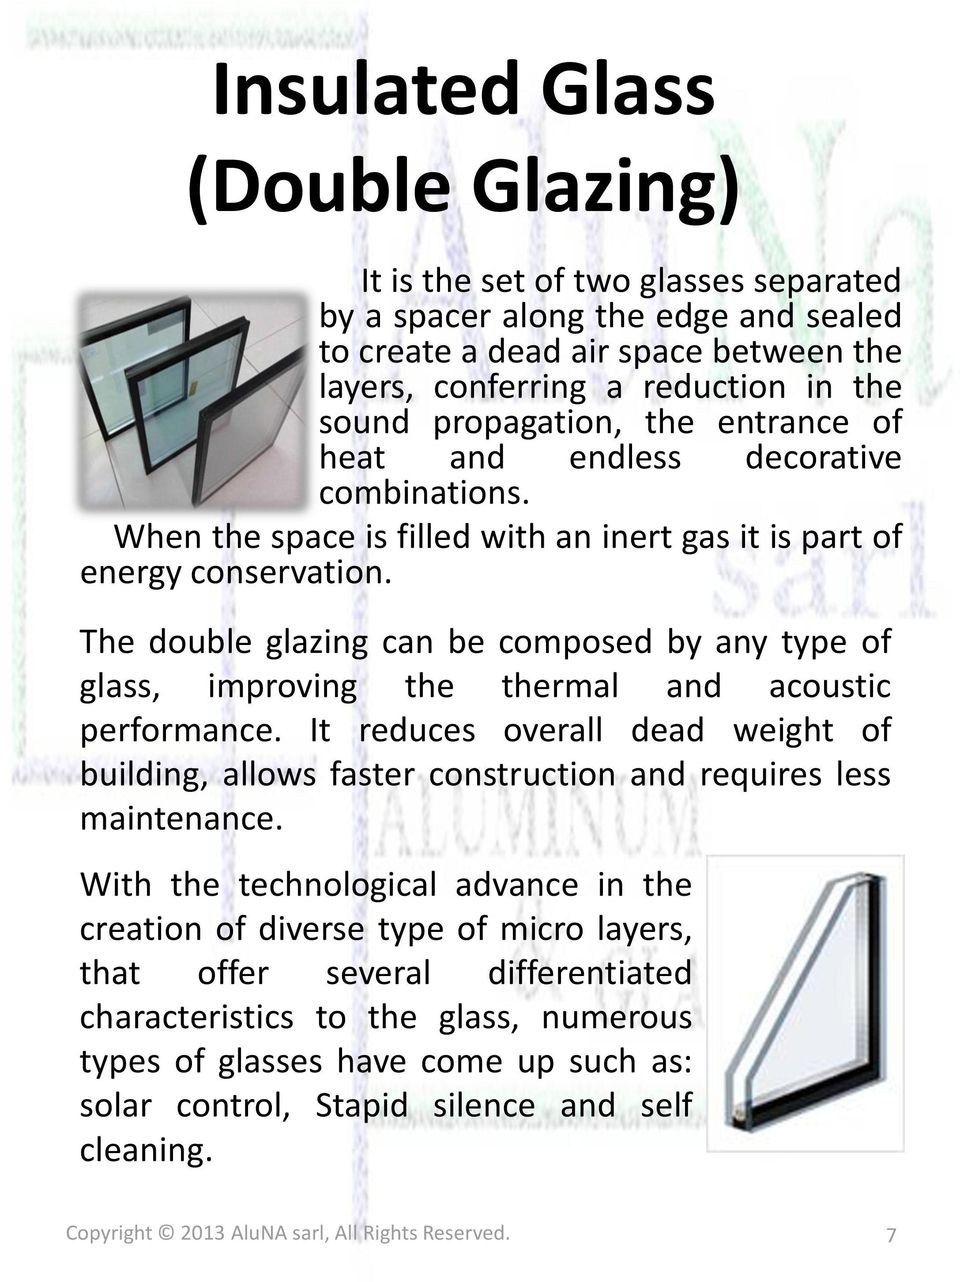 The double glazing can be composed by any type of glass, improving the thermal and acoustic performance.